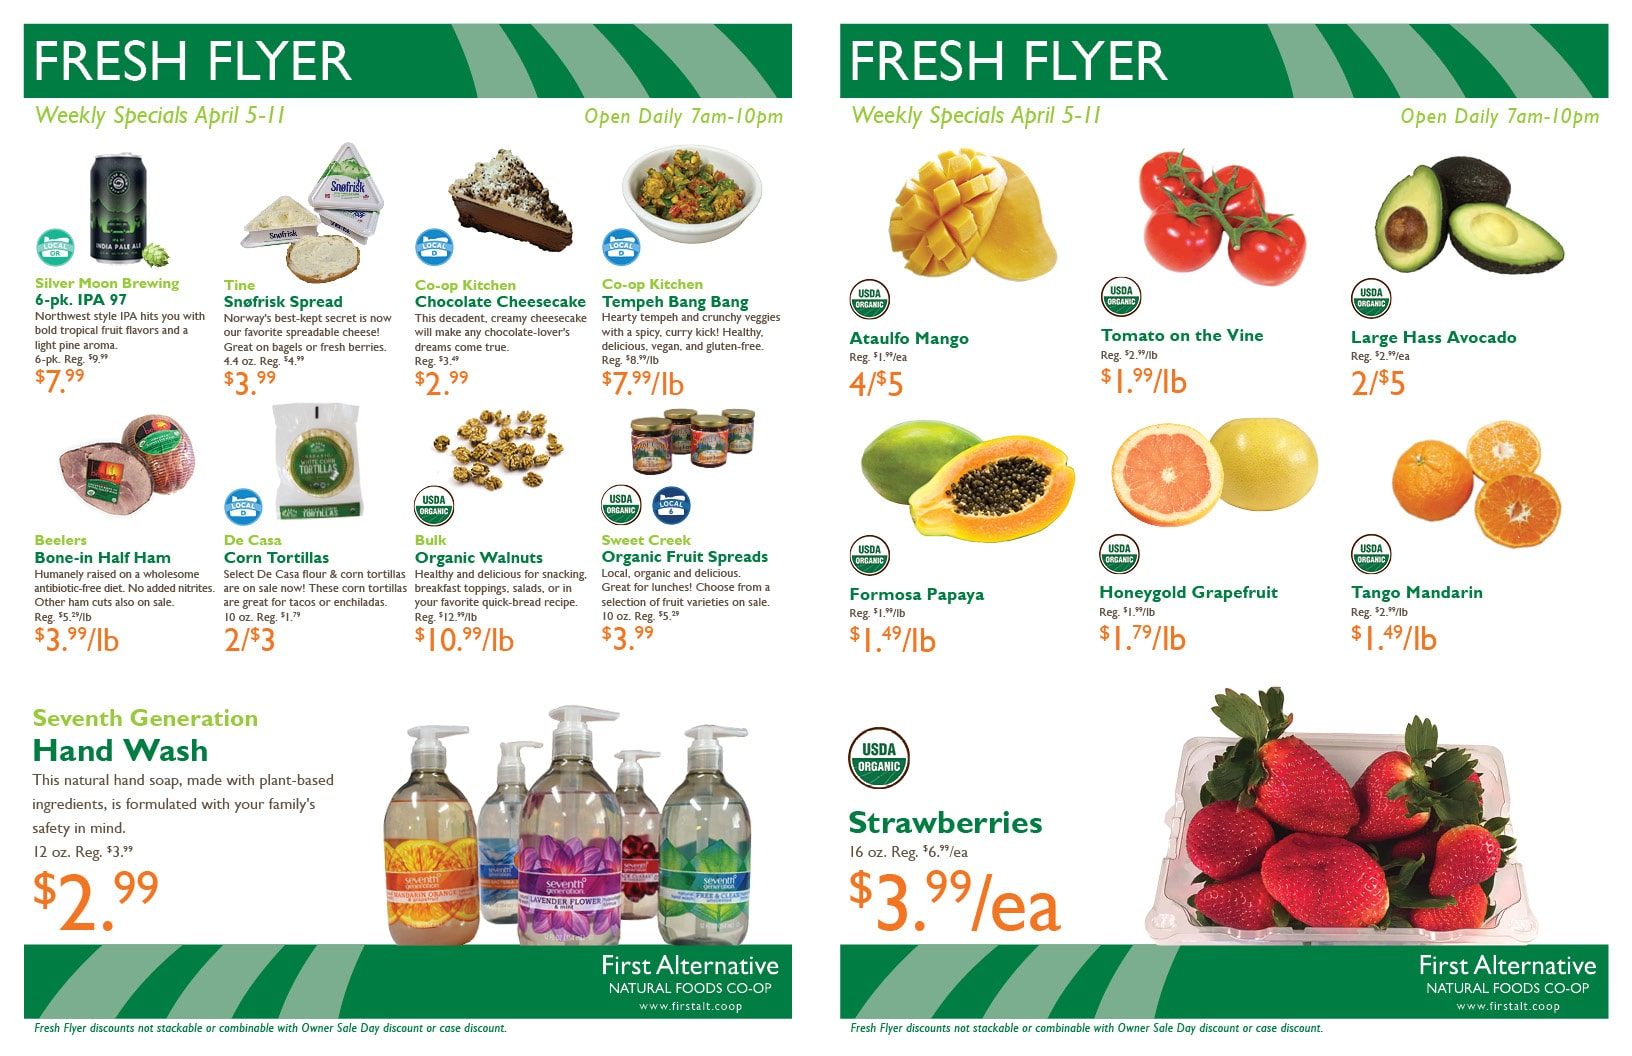 First Alternative Co-op Fresh Flyer Apr. 5-11